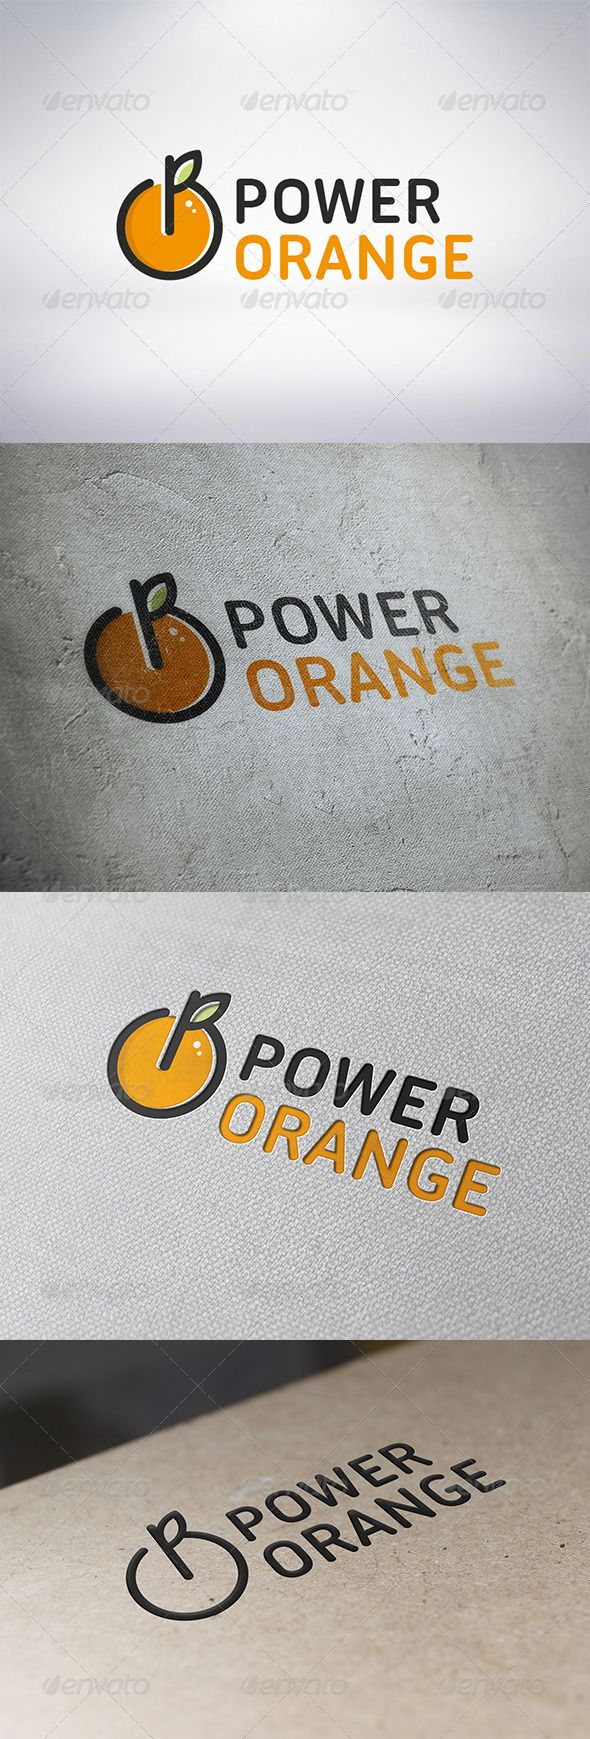 Power Orange Logo Template #GraphicRiver - Three color version: color, greyscale and single color. - The logo is 100% resizable. -